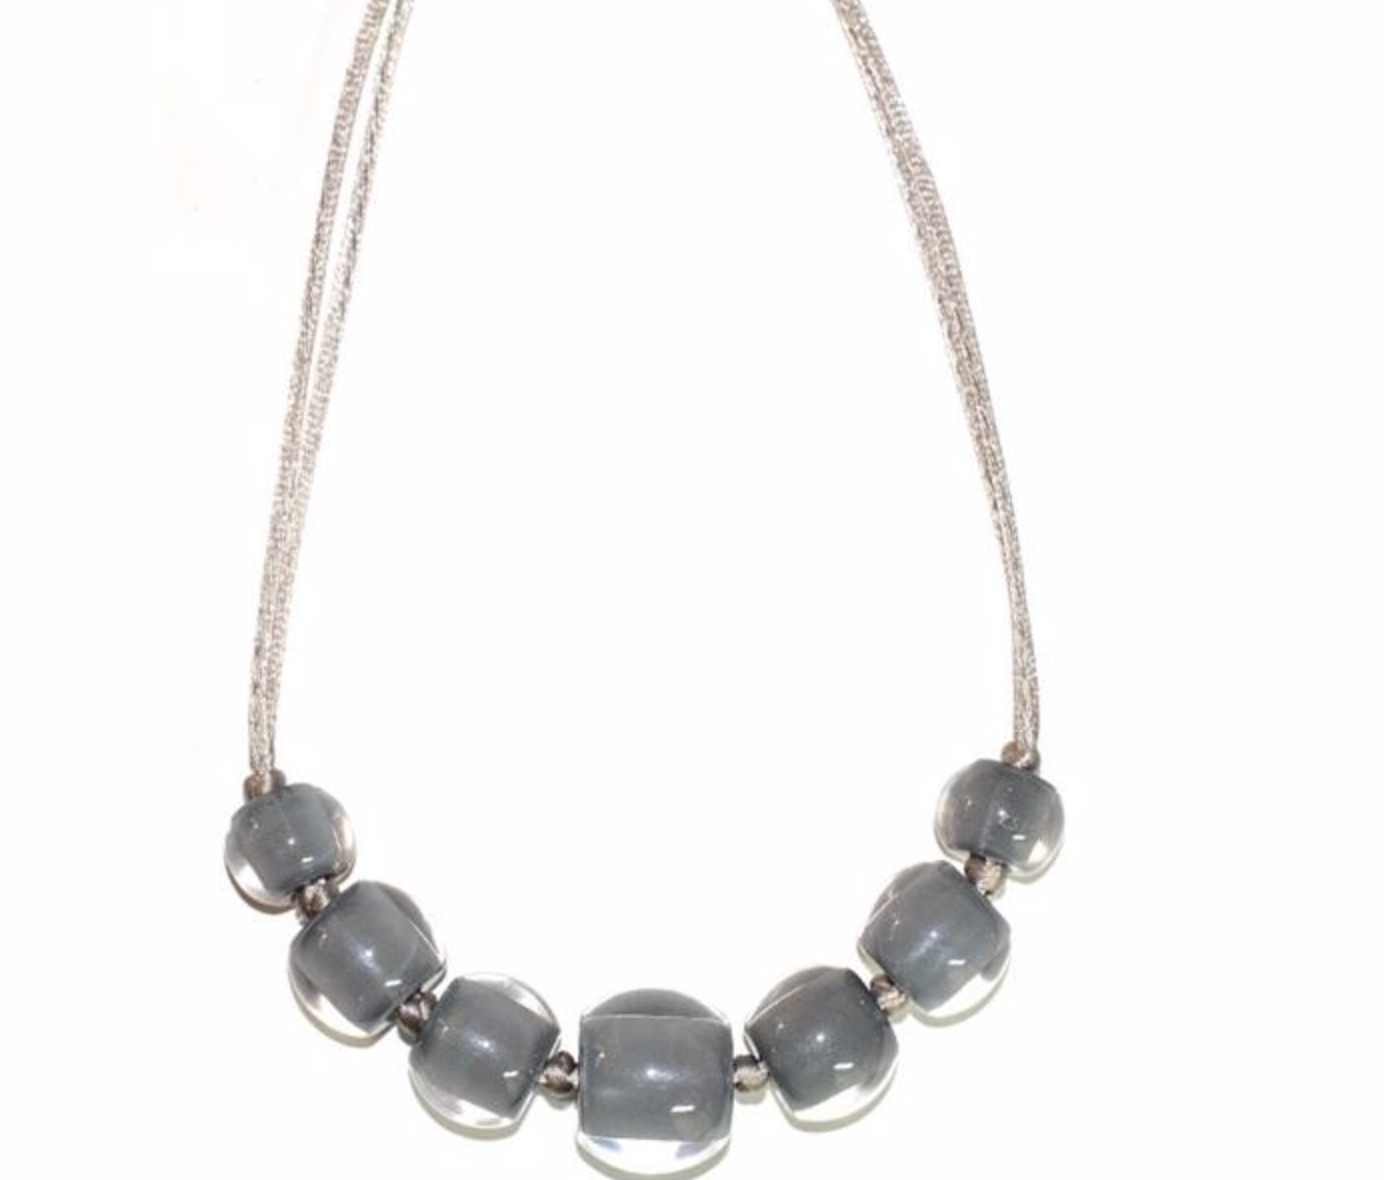 Zsiska Colourful Beads Soft Grey Necklace-Jewellery-Zsiska-Temples and Markets